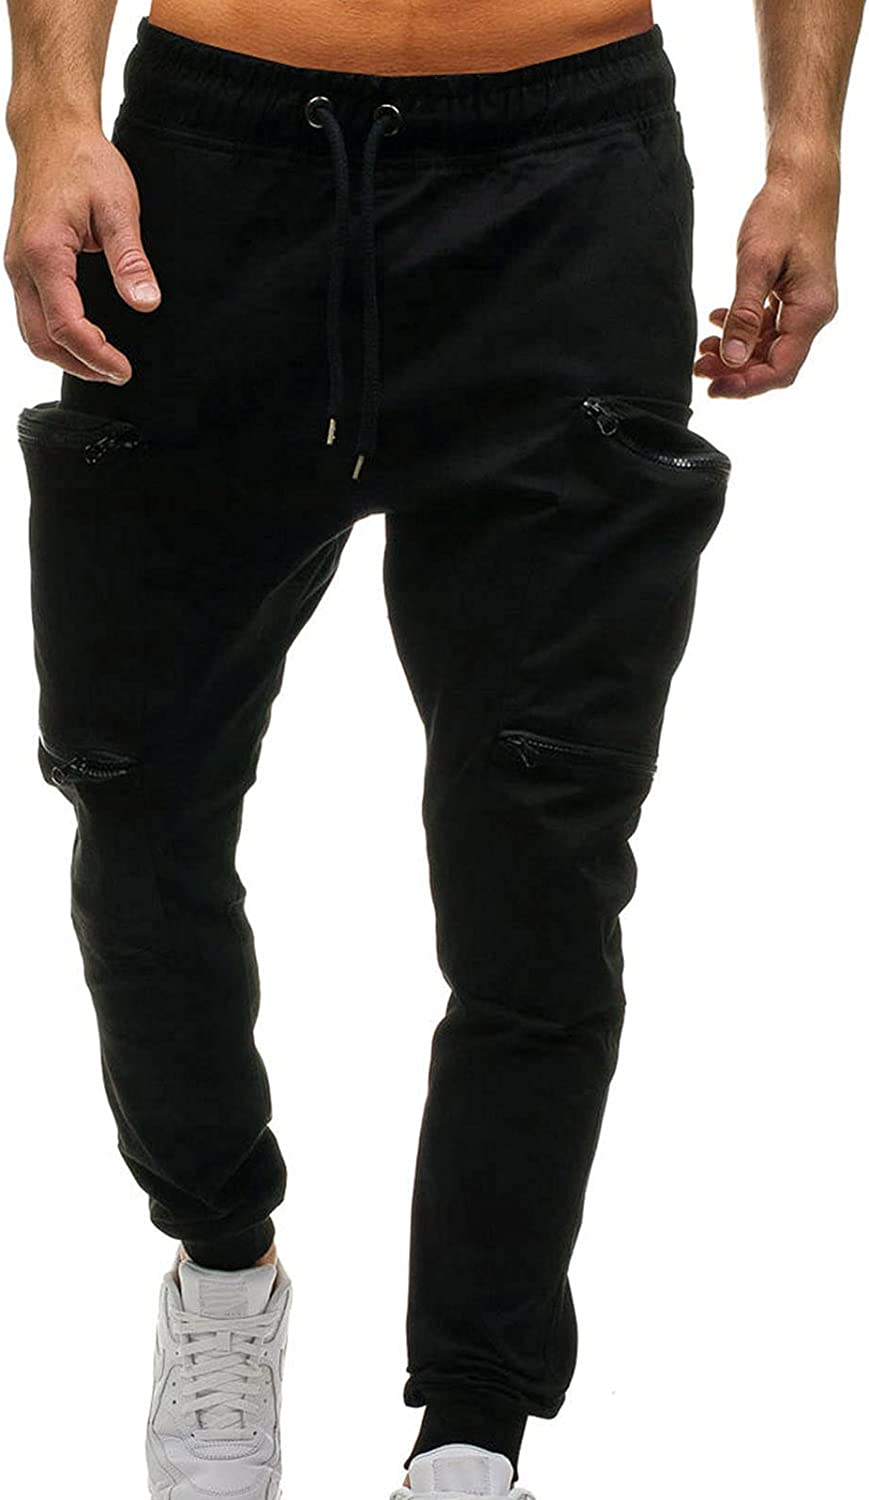 Cargo Pants for Men with Pockets, Men's Casual Relaxed Fit Big and Tall Cargo Trousers Pockets Full Pants